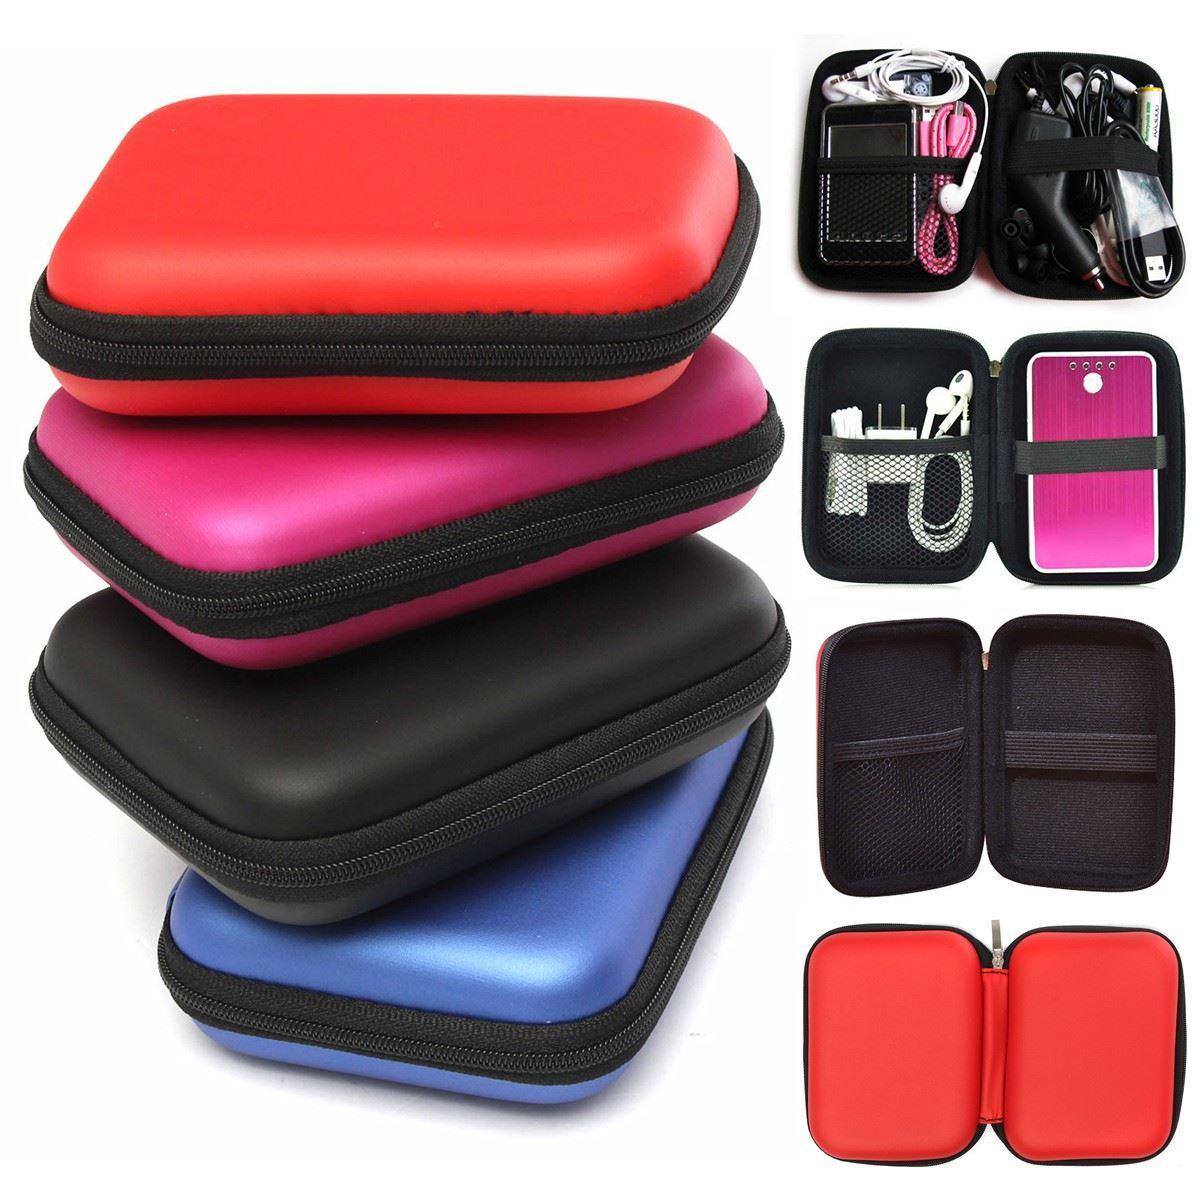 Special Promo!! Case harddisk Hard Case Shockproof Tas Hardisk / Powerbank  Softcase Tahan Banting for External HDD 2.5 inch Pouch Bag Flash Sale